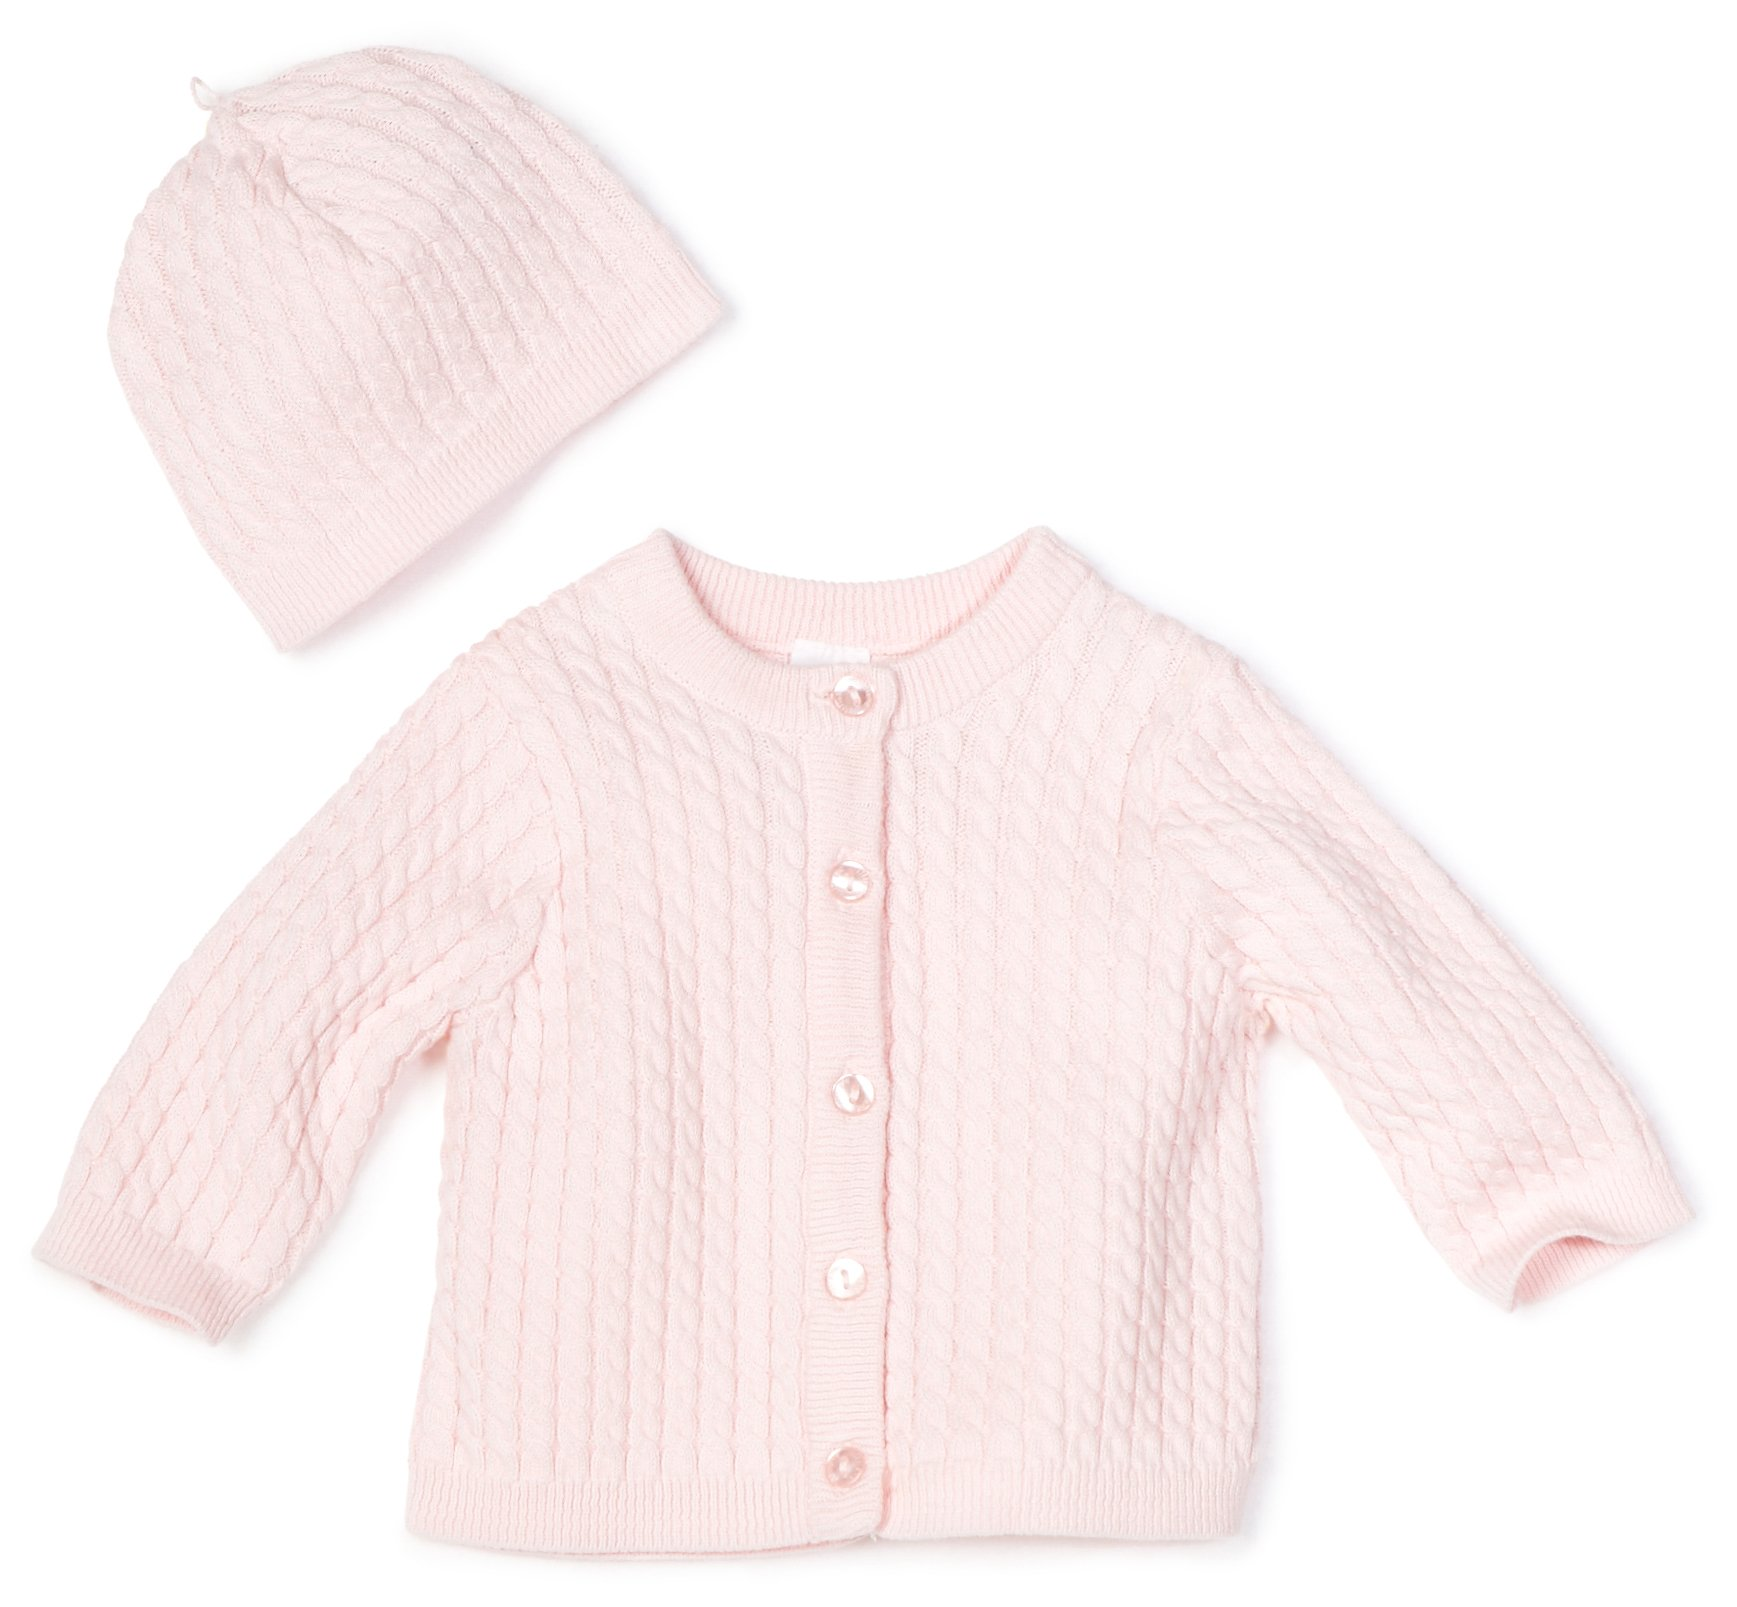 Little Me Baby Girl Newborn Adorable Cable Sweater, Light Pink, 3 Months by Little Me